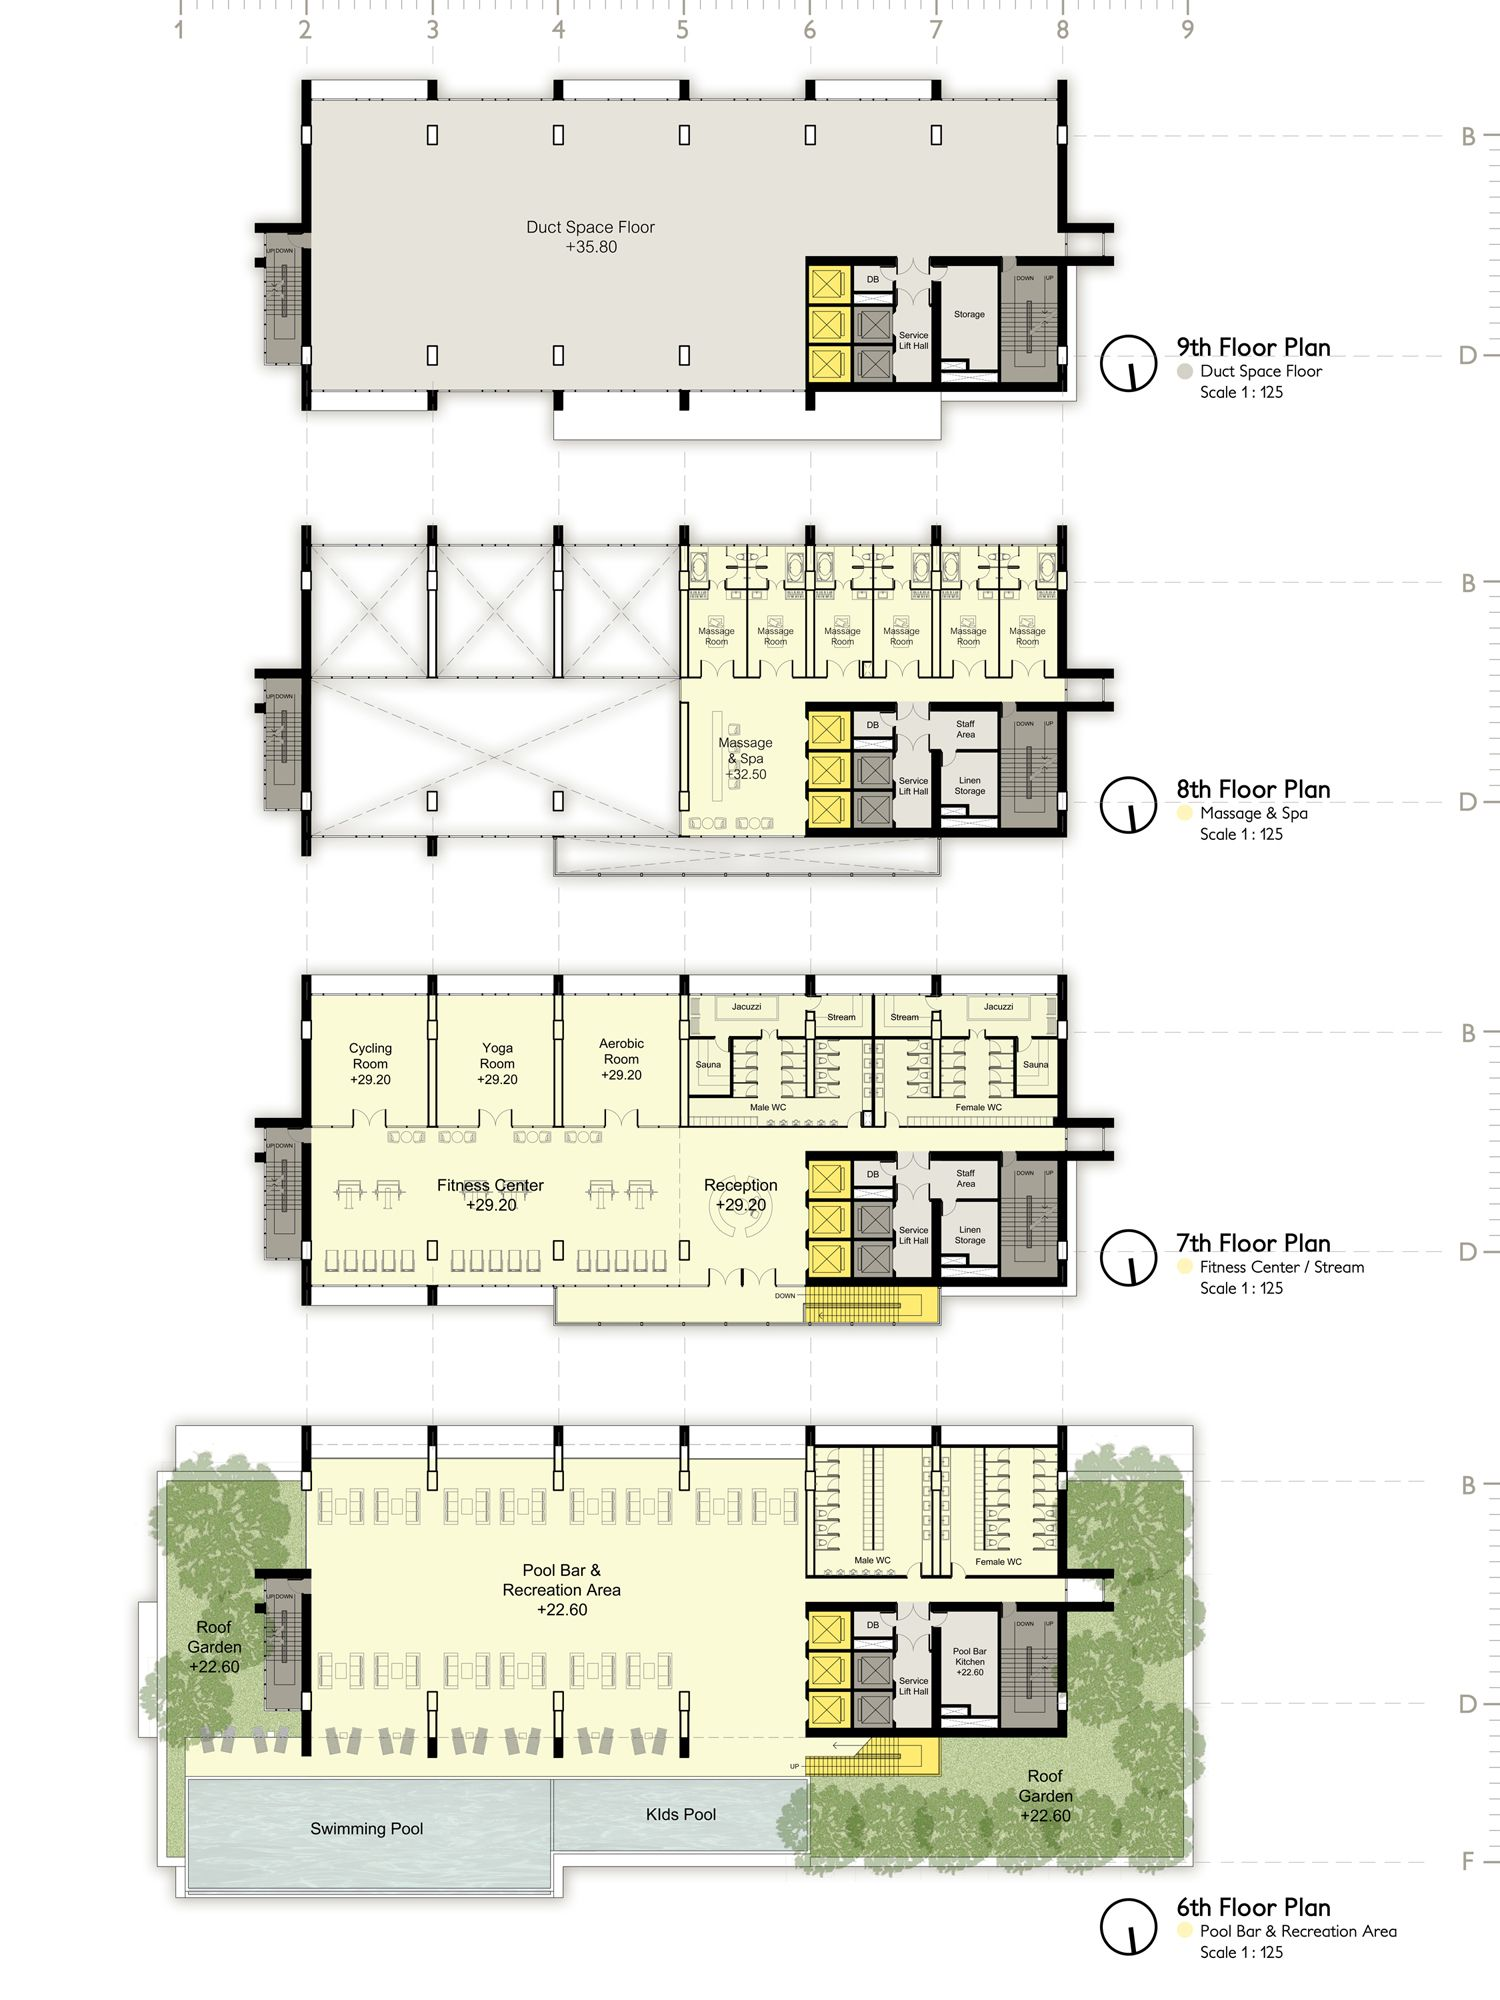 Facility Floor Plan Floor Plans Hotel Architecture Hotel Plan